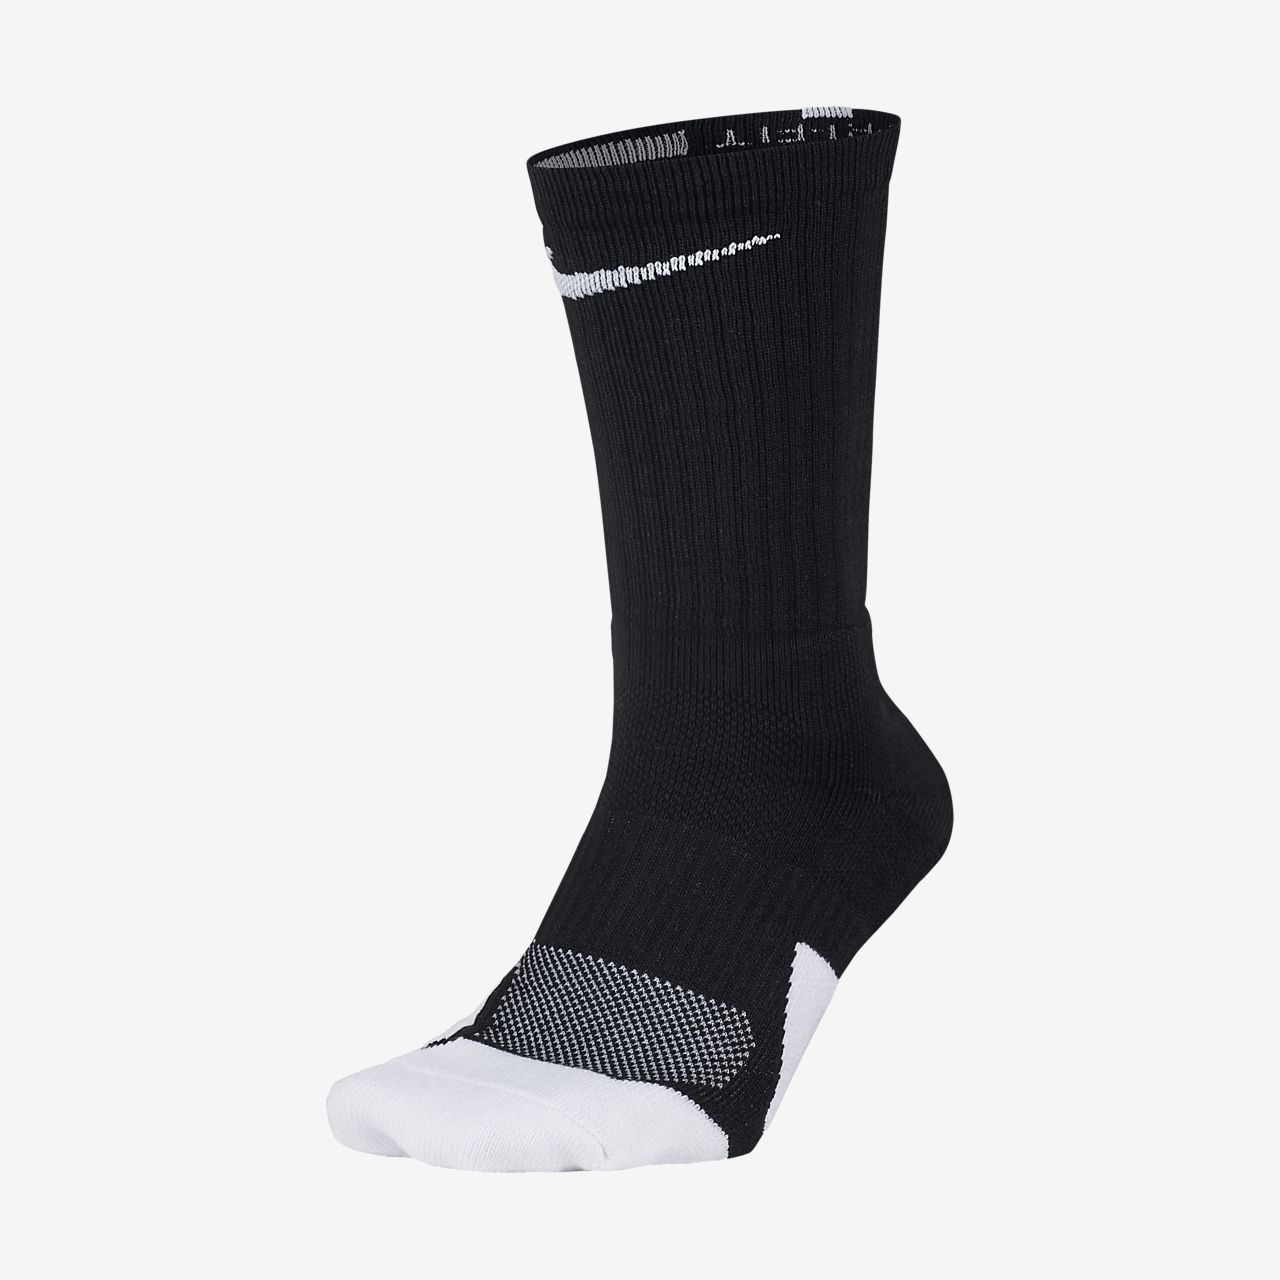 bd420f0355d5 Nike Dry Elite 1.5 Crew Basketball Socks. Nike.com GB